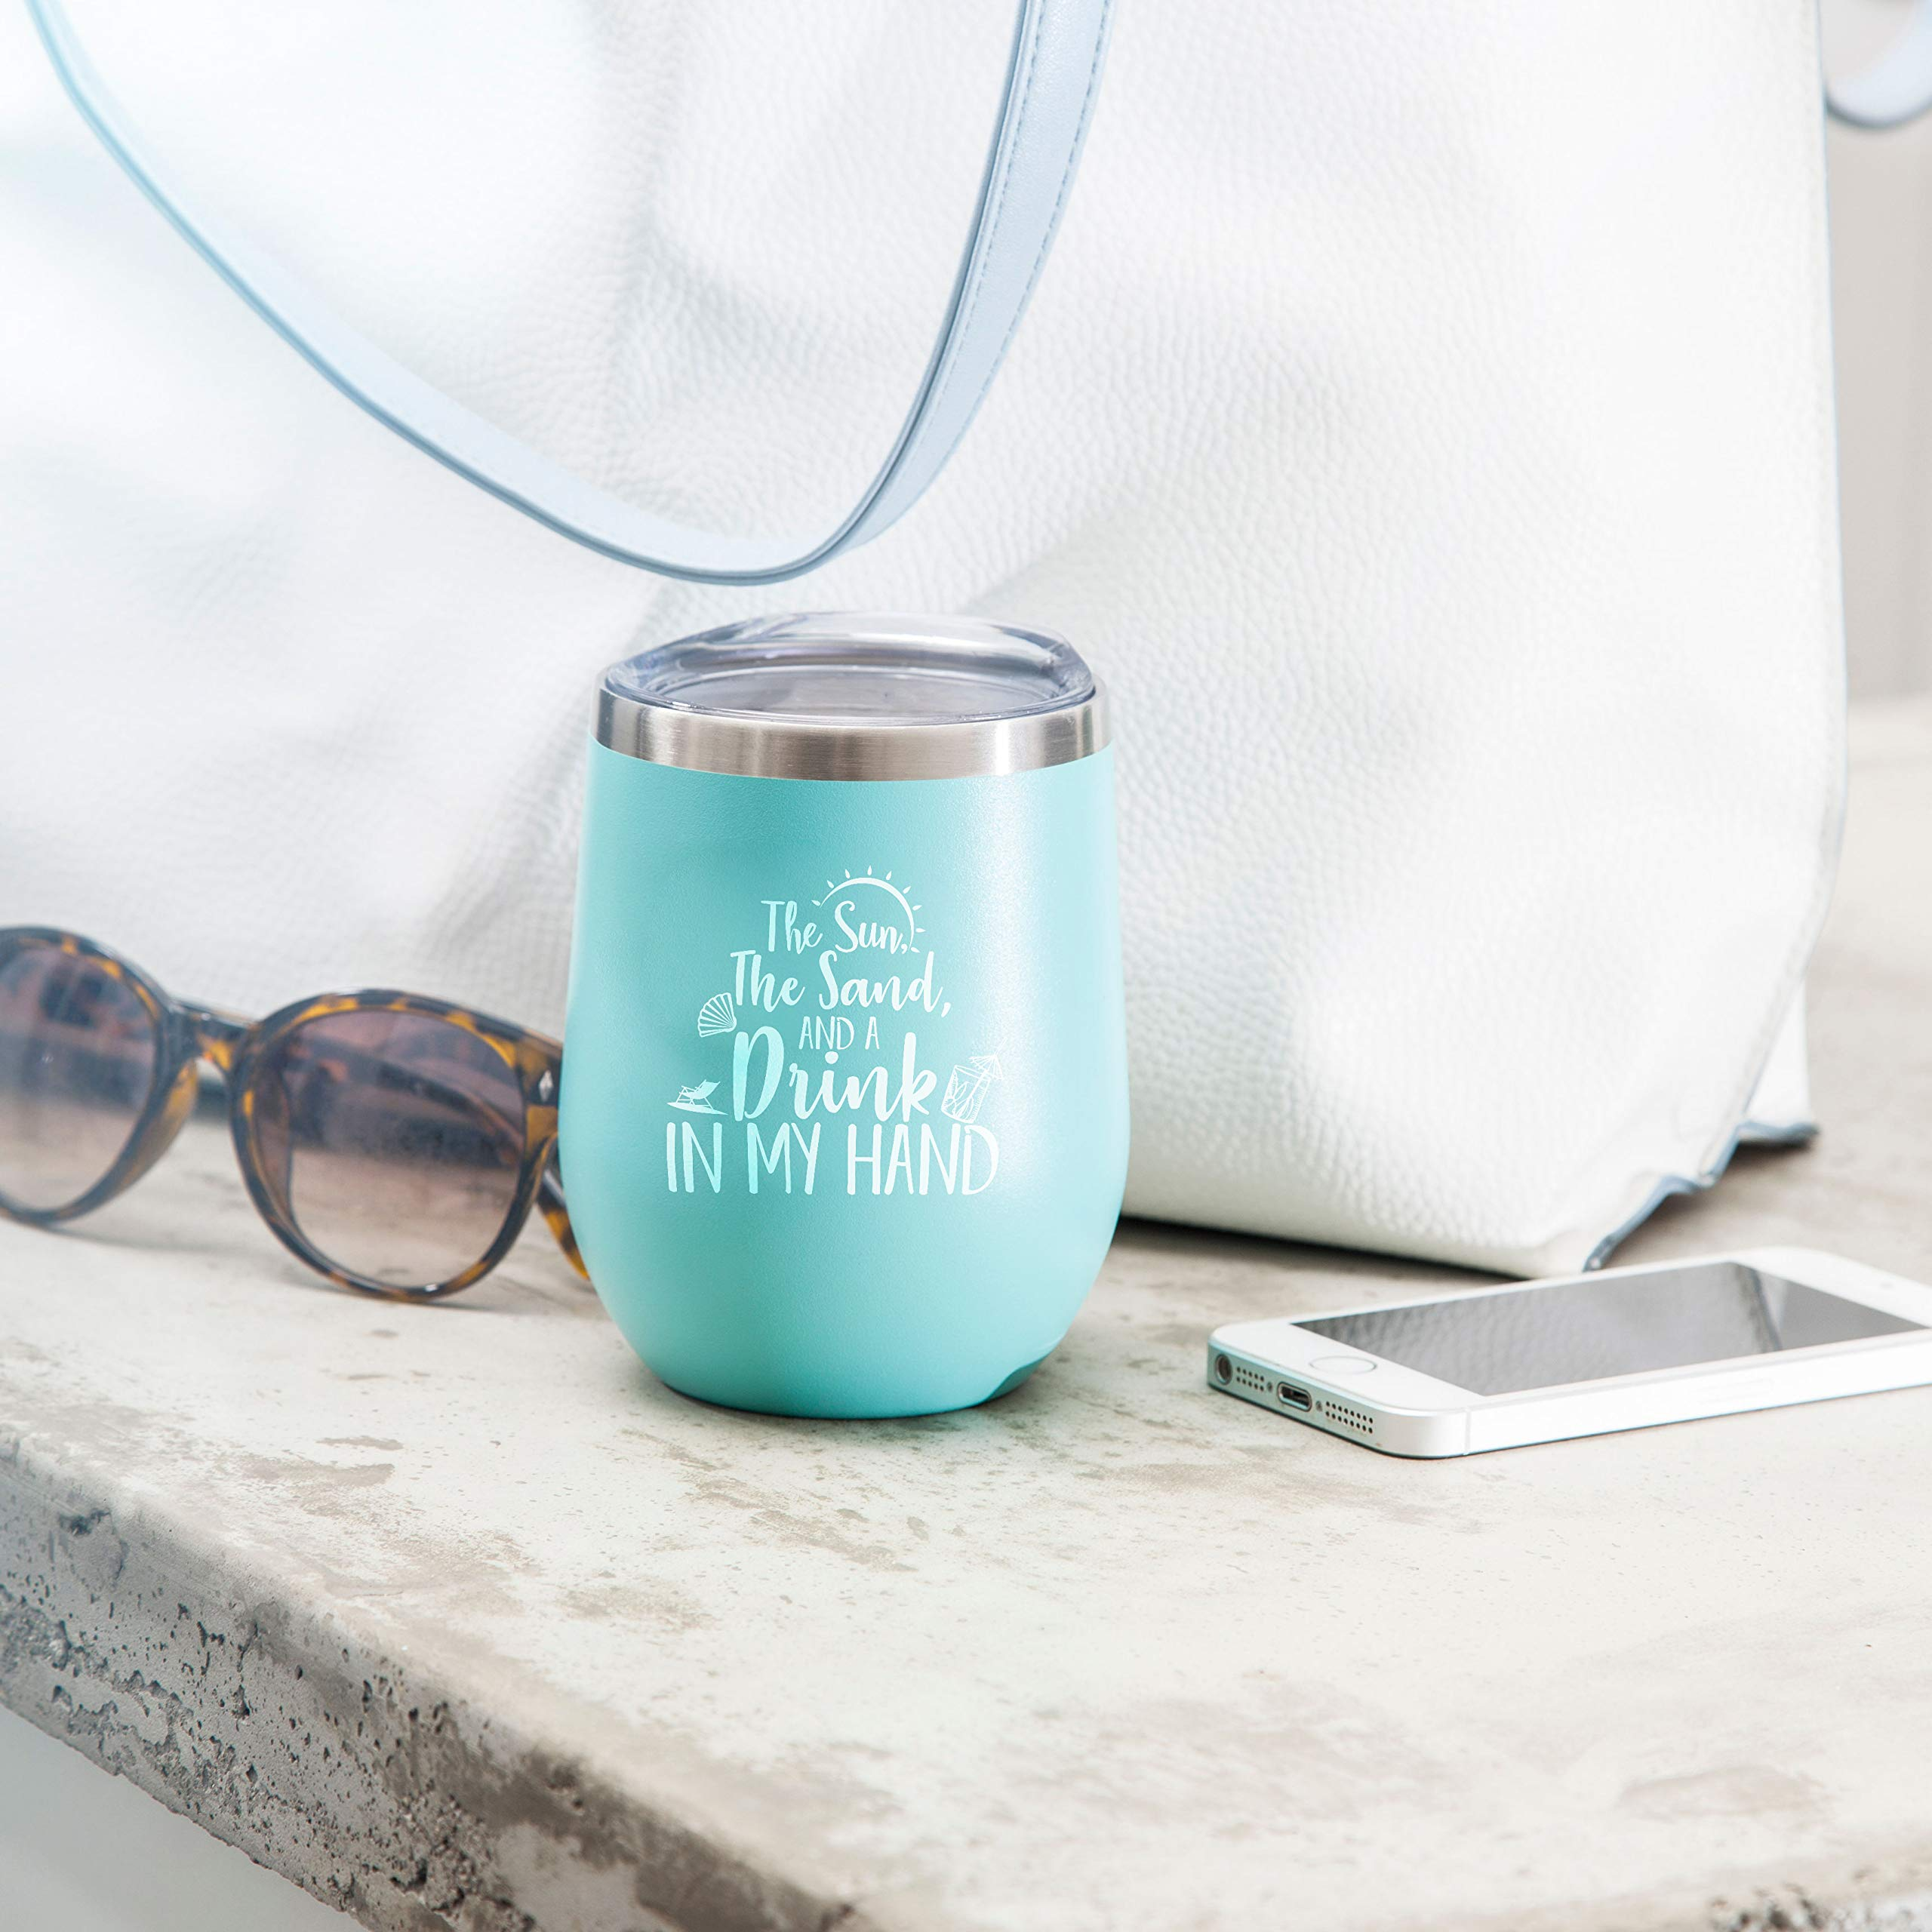 The Sun The Sand and A Drink In My Hand - Perfect Insulated Travel Cup for The Beach, Lake or Pool - 12 oz Stainless Steel Wine Glass Tumbler with Lid by Gelid (Image #7)